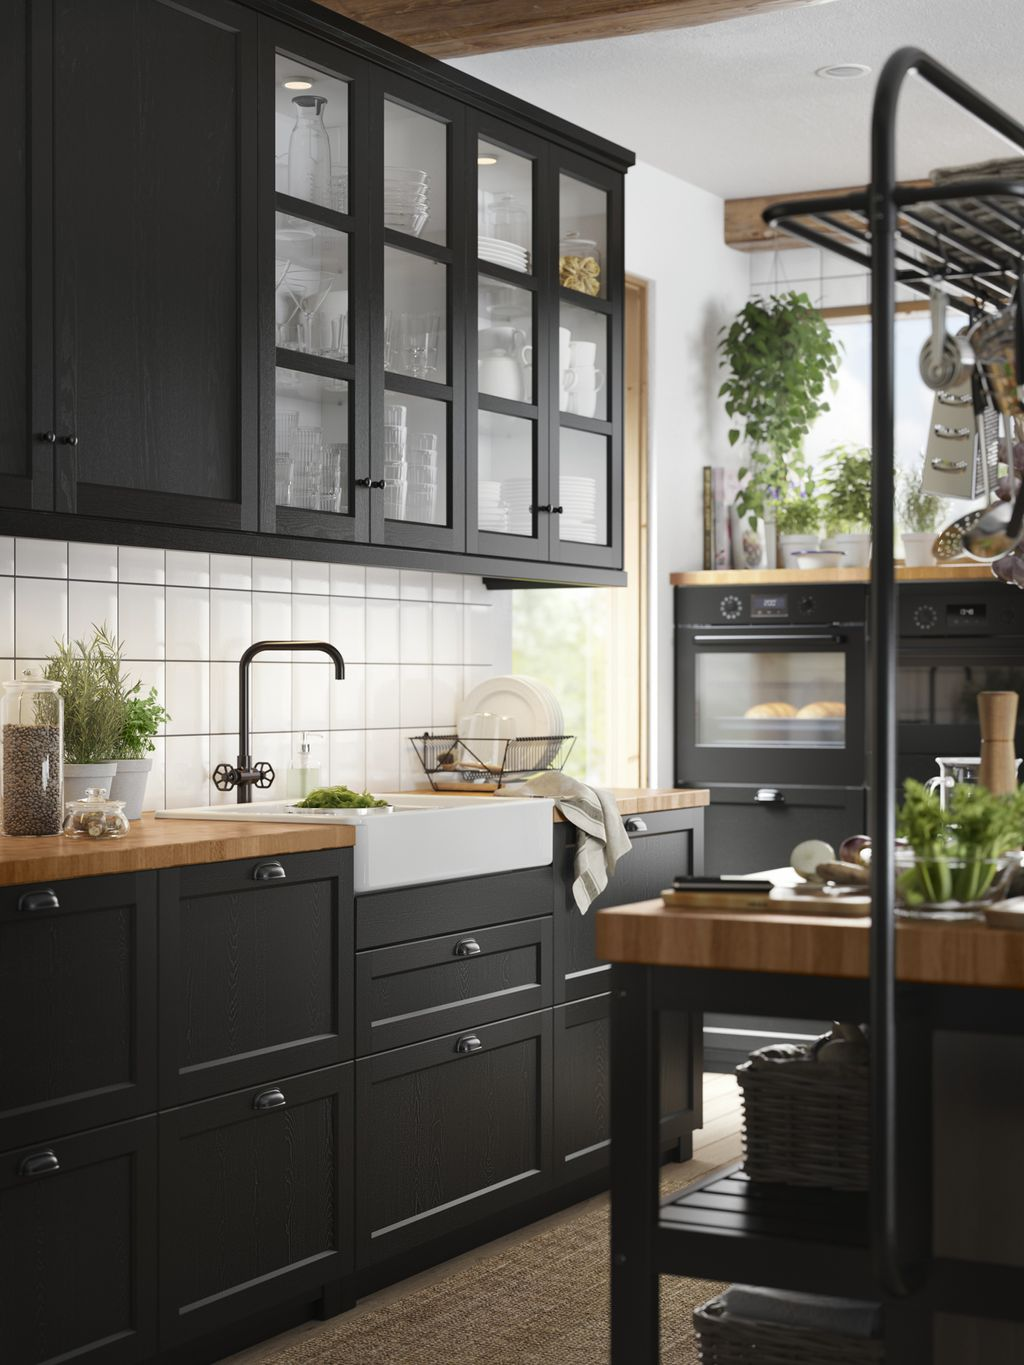 Ikea le nouveau design cuisines 19/19 - PLANETE DECO a homes world